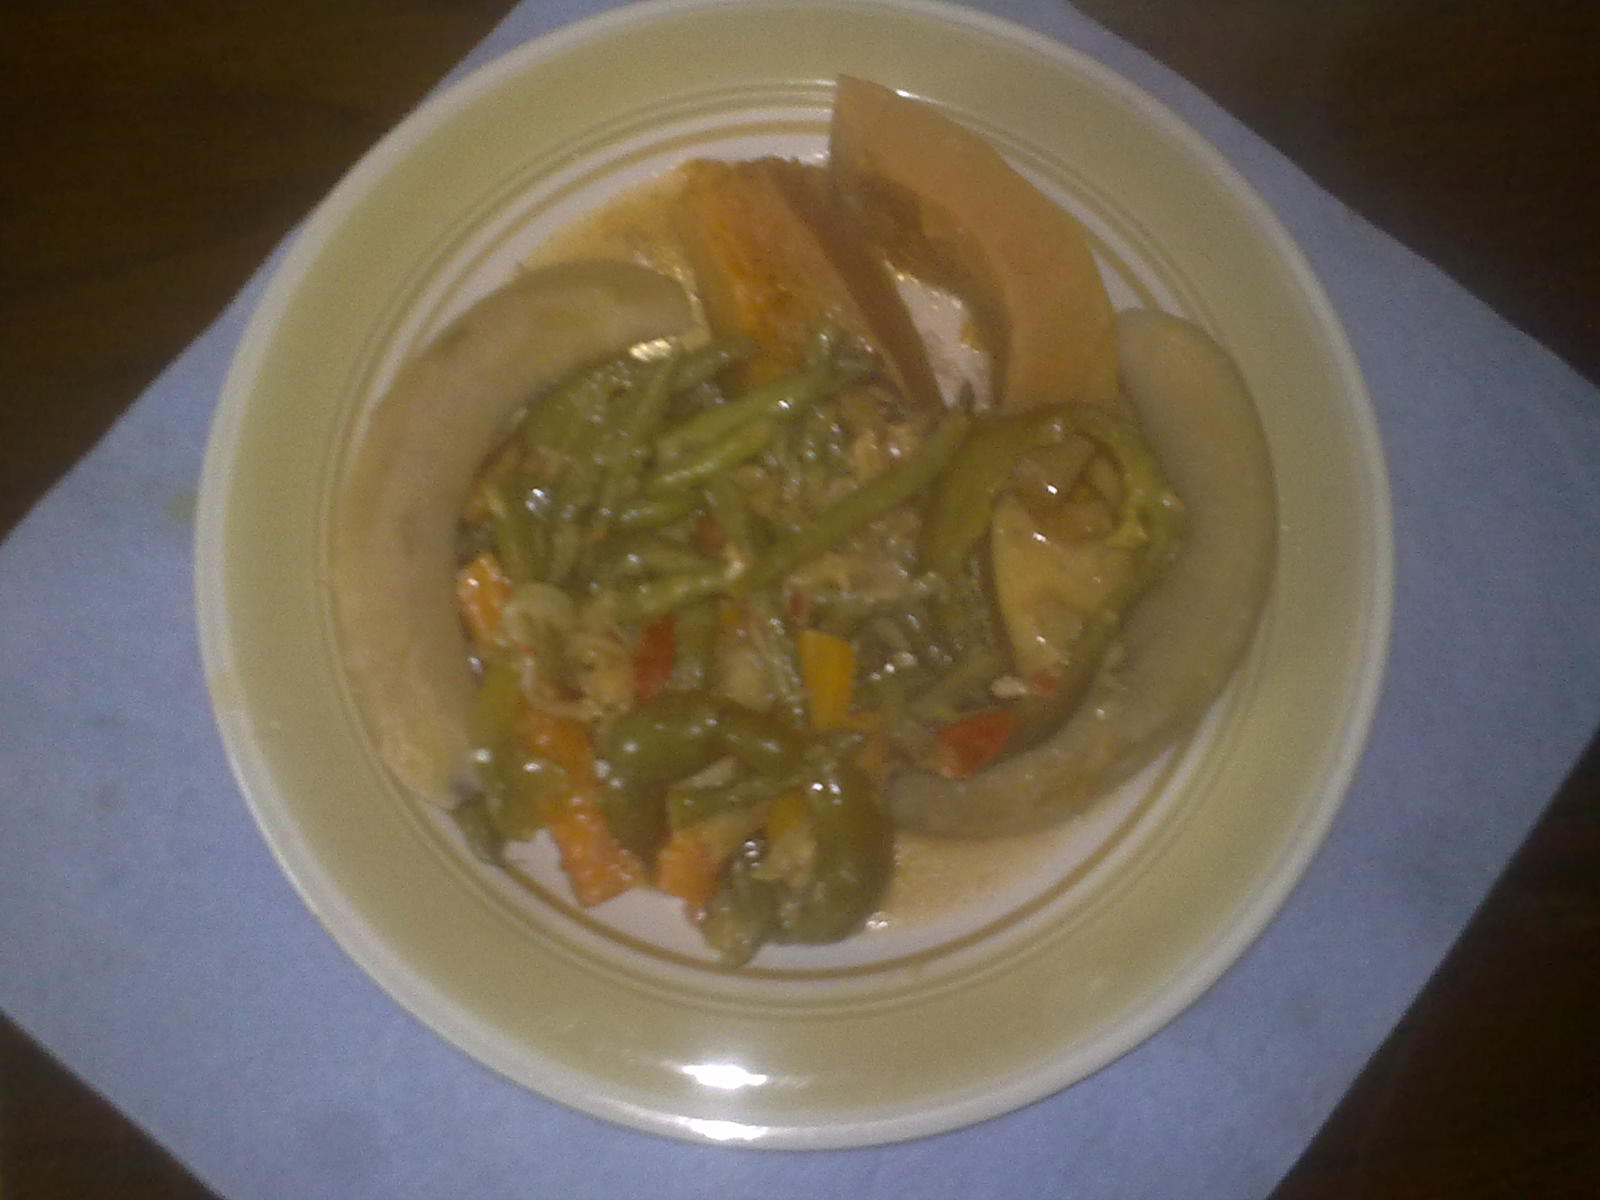 Steamed Vegetable with pumpkin and green bananas